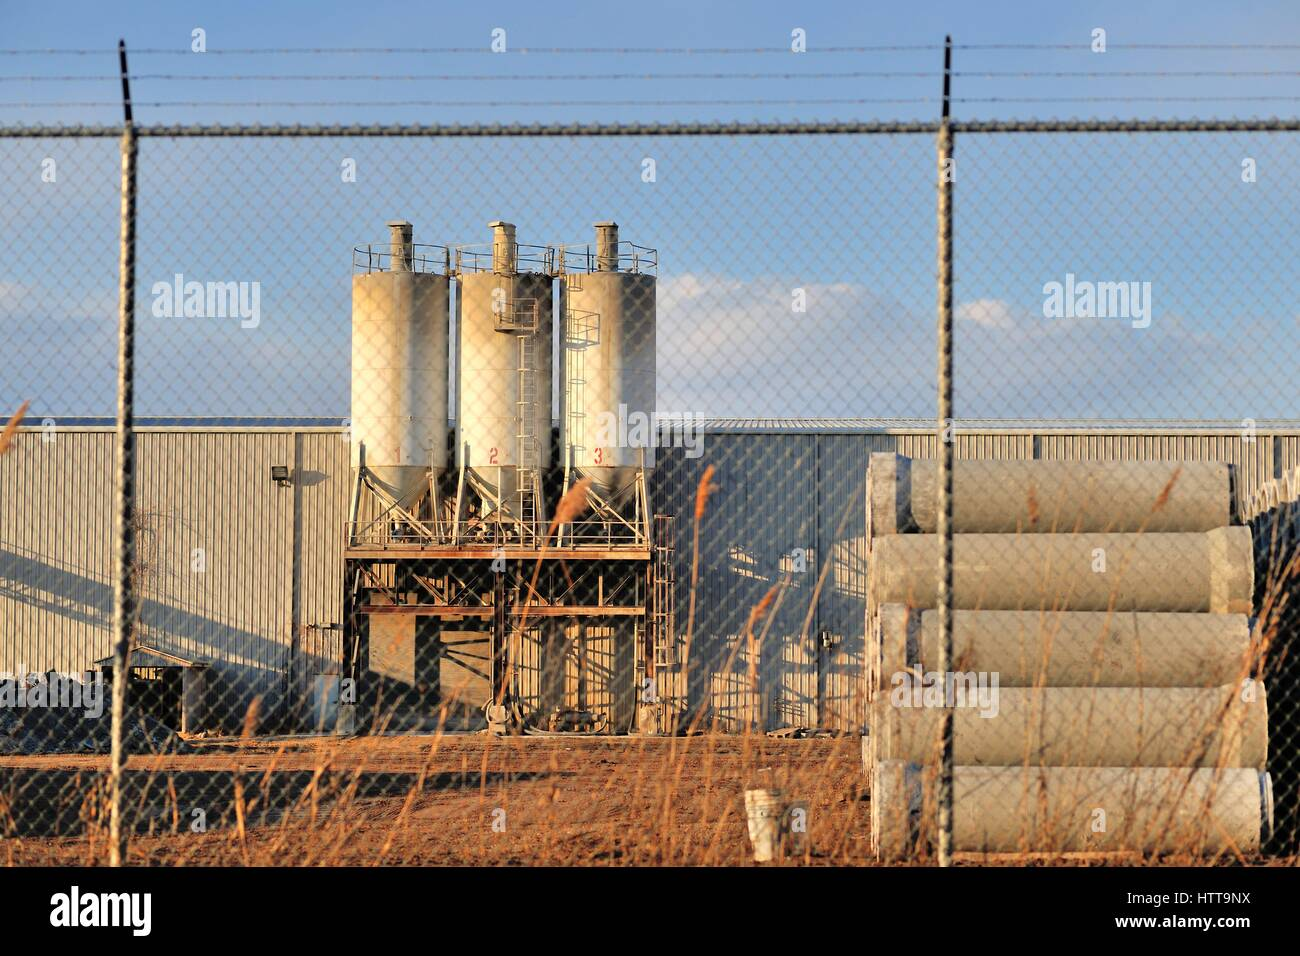 A manufacturing business secured behind a chain link fence, topped by barb wire in this industrial setting in Bartlett, - Stock Image